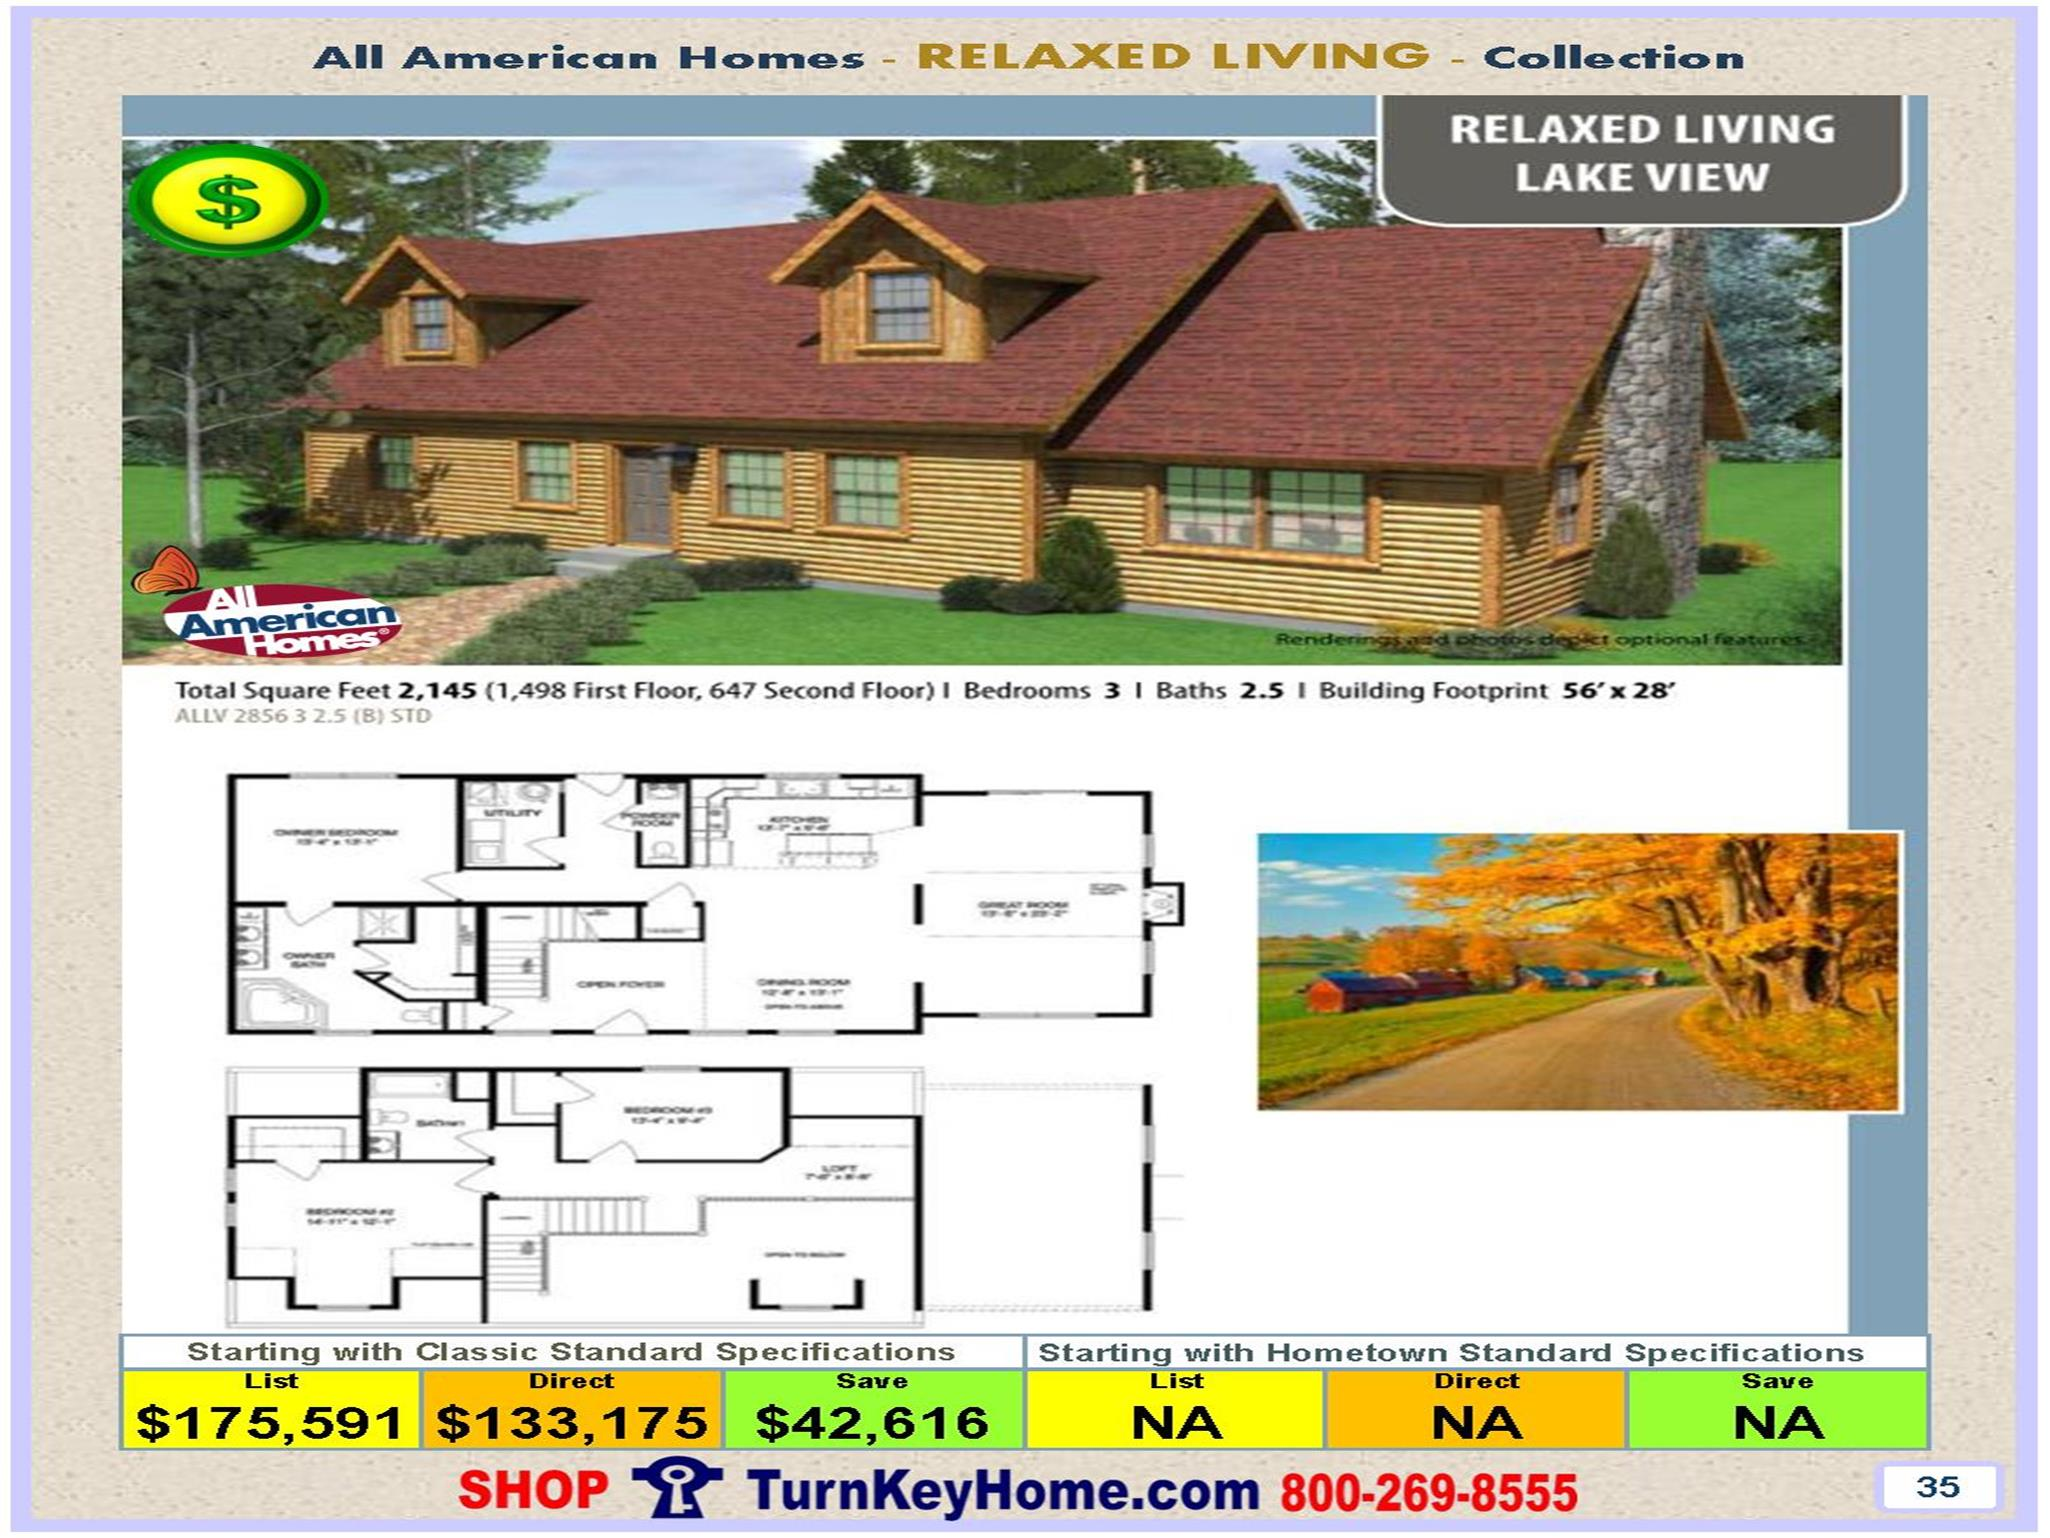 lake view all american modular home relaxed living collection plan